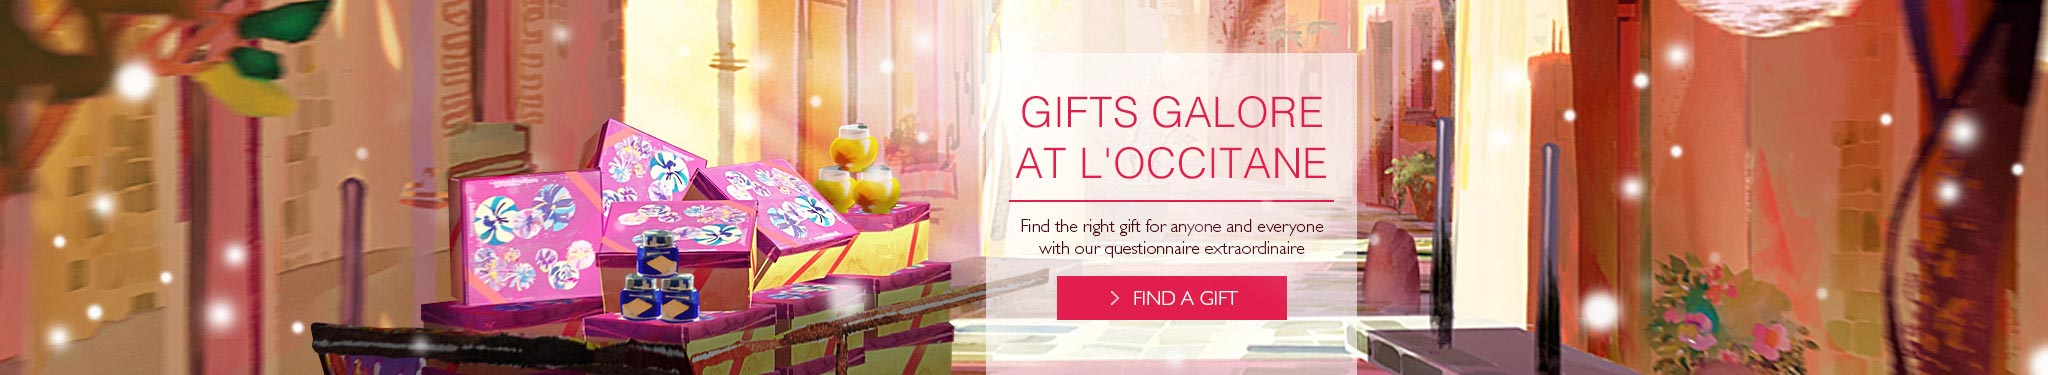 Find the right gift for anyone with our questionnarie extraordinarie